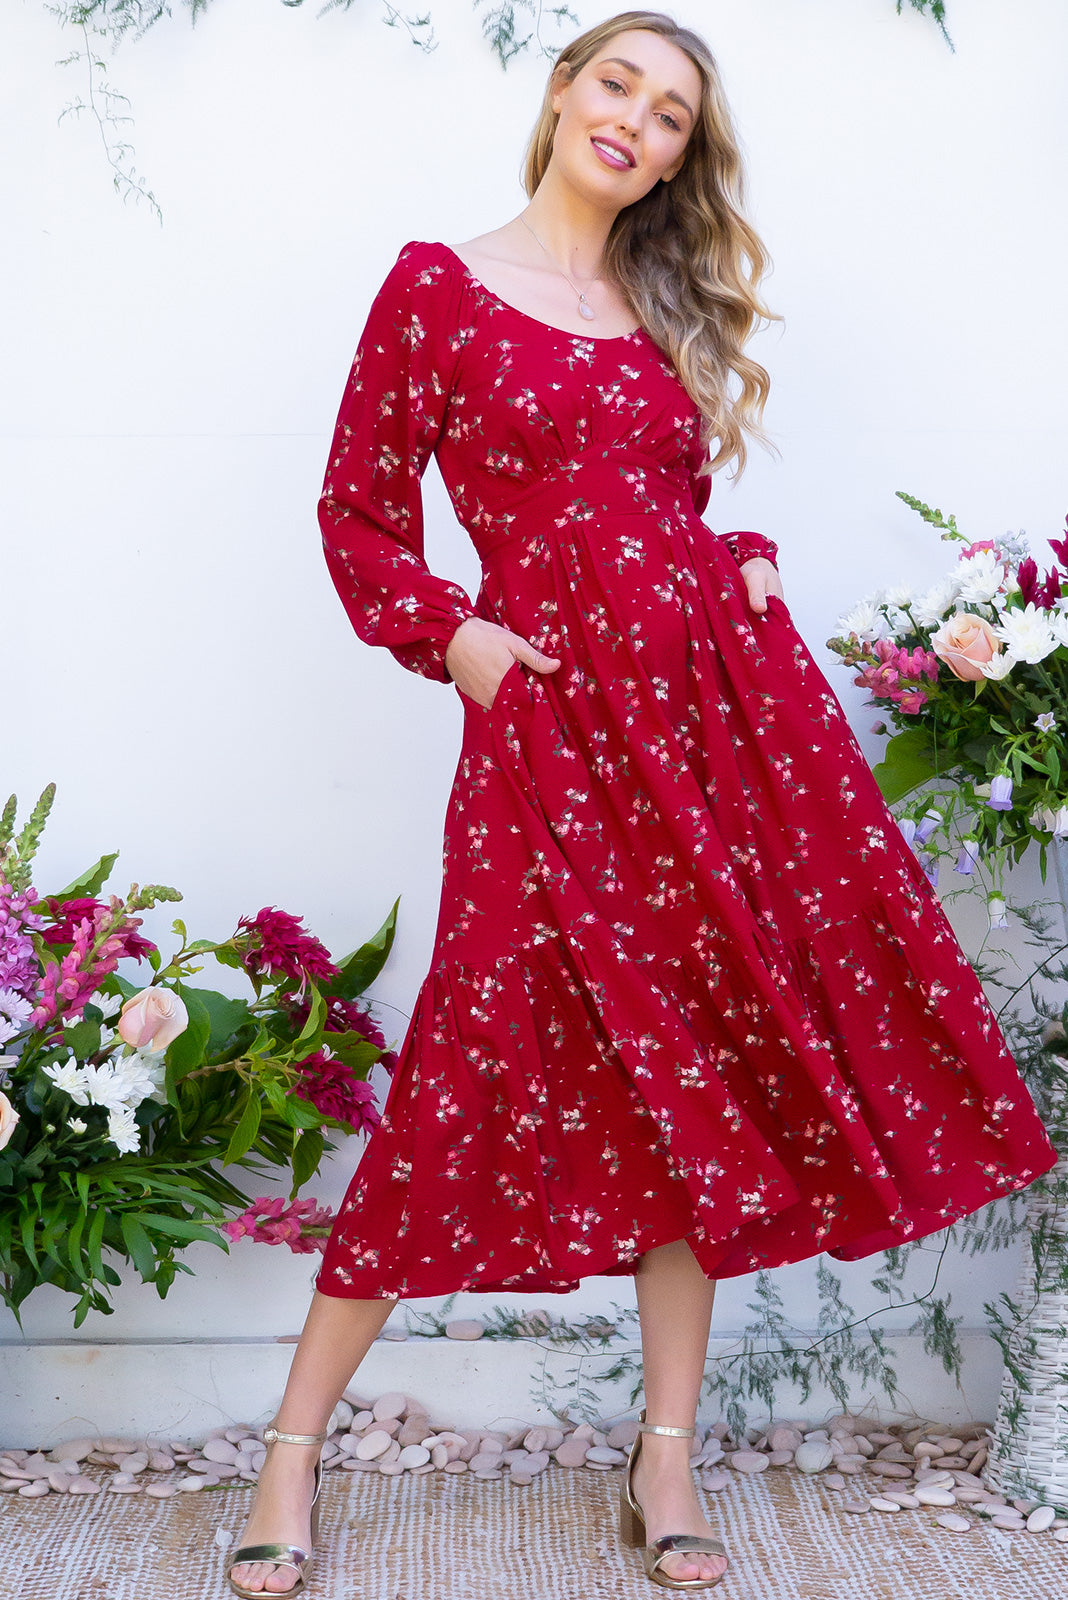 Gwendoline Red Posy Midi Dress features a scooped neck, empire line, long sleeves, side pockets and a deep frill on the hemline. It comes in a gorgeous romantic bohemian posy rose print on woven 100% rayon.